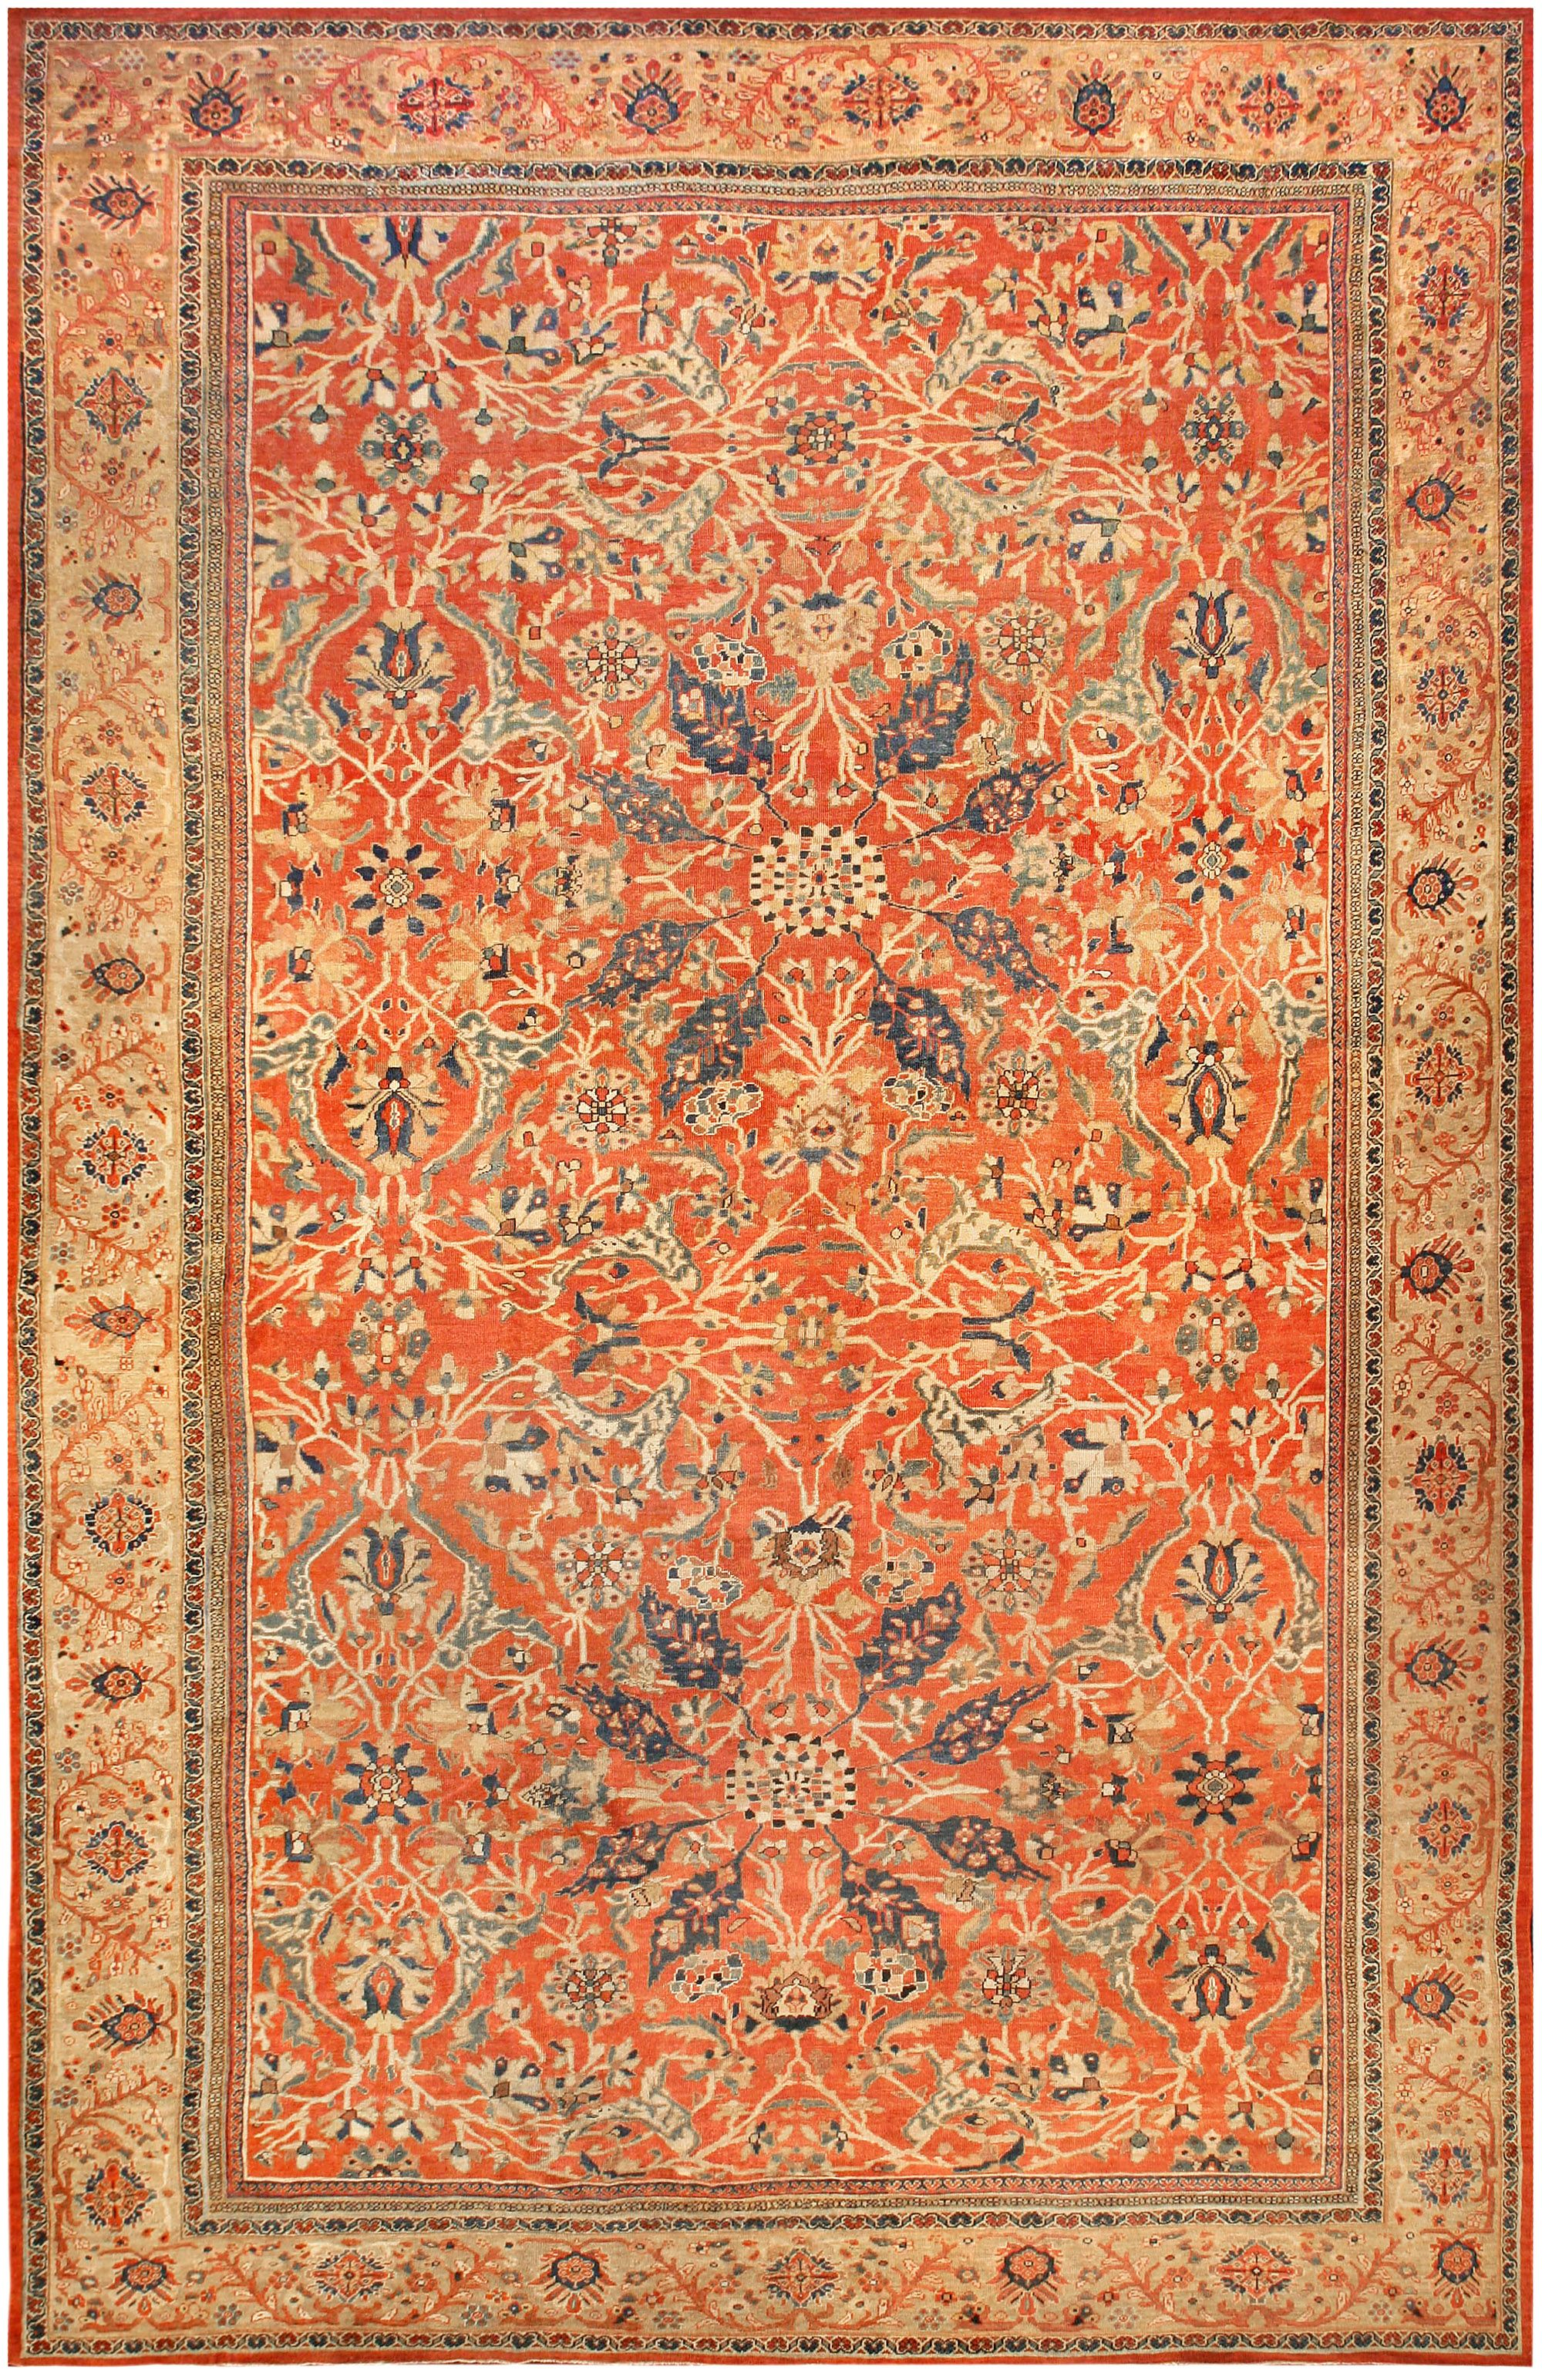 Antique Persian Sultanabad Rug Bb7190 By Dlb Sultanabad Rug Rugs On Carpet Antique Persian Rug